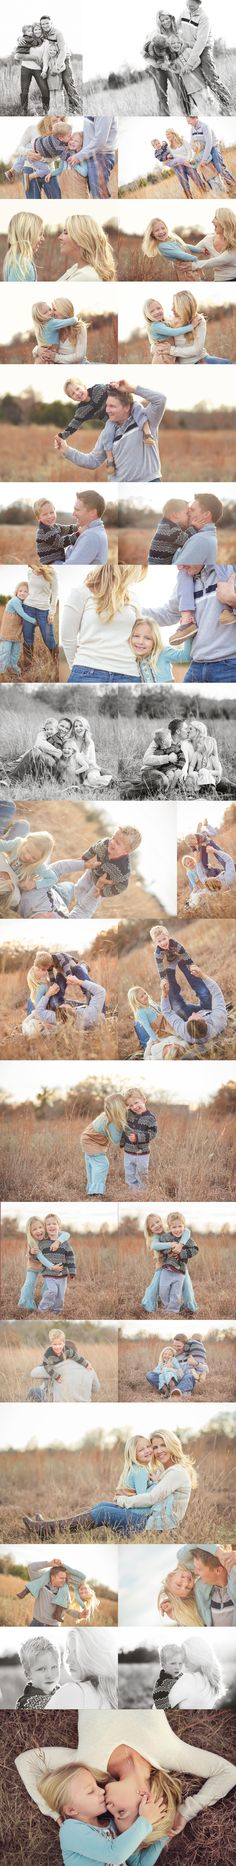 So freaking cute!! I love love lifestyle photography its so cuter than posed ... Makes me excited to do ours this fall !!